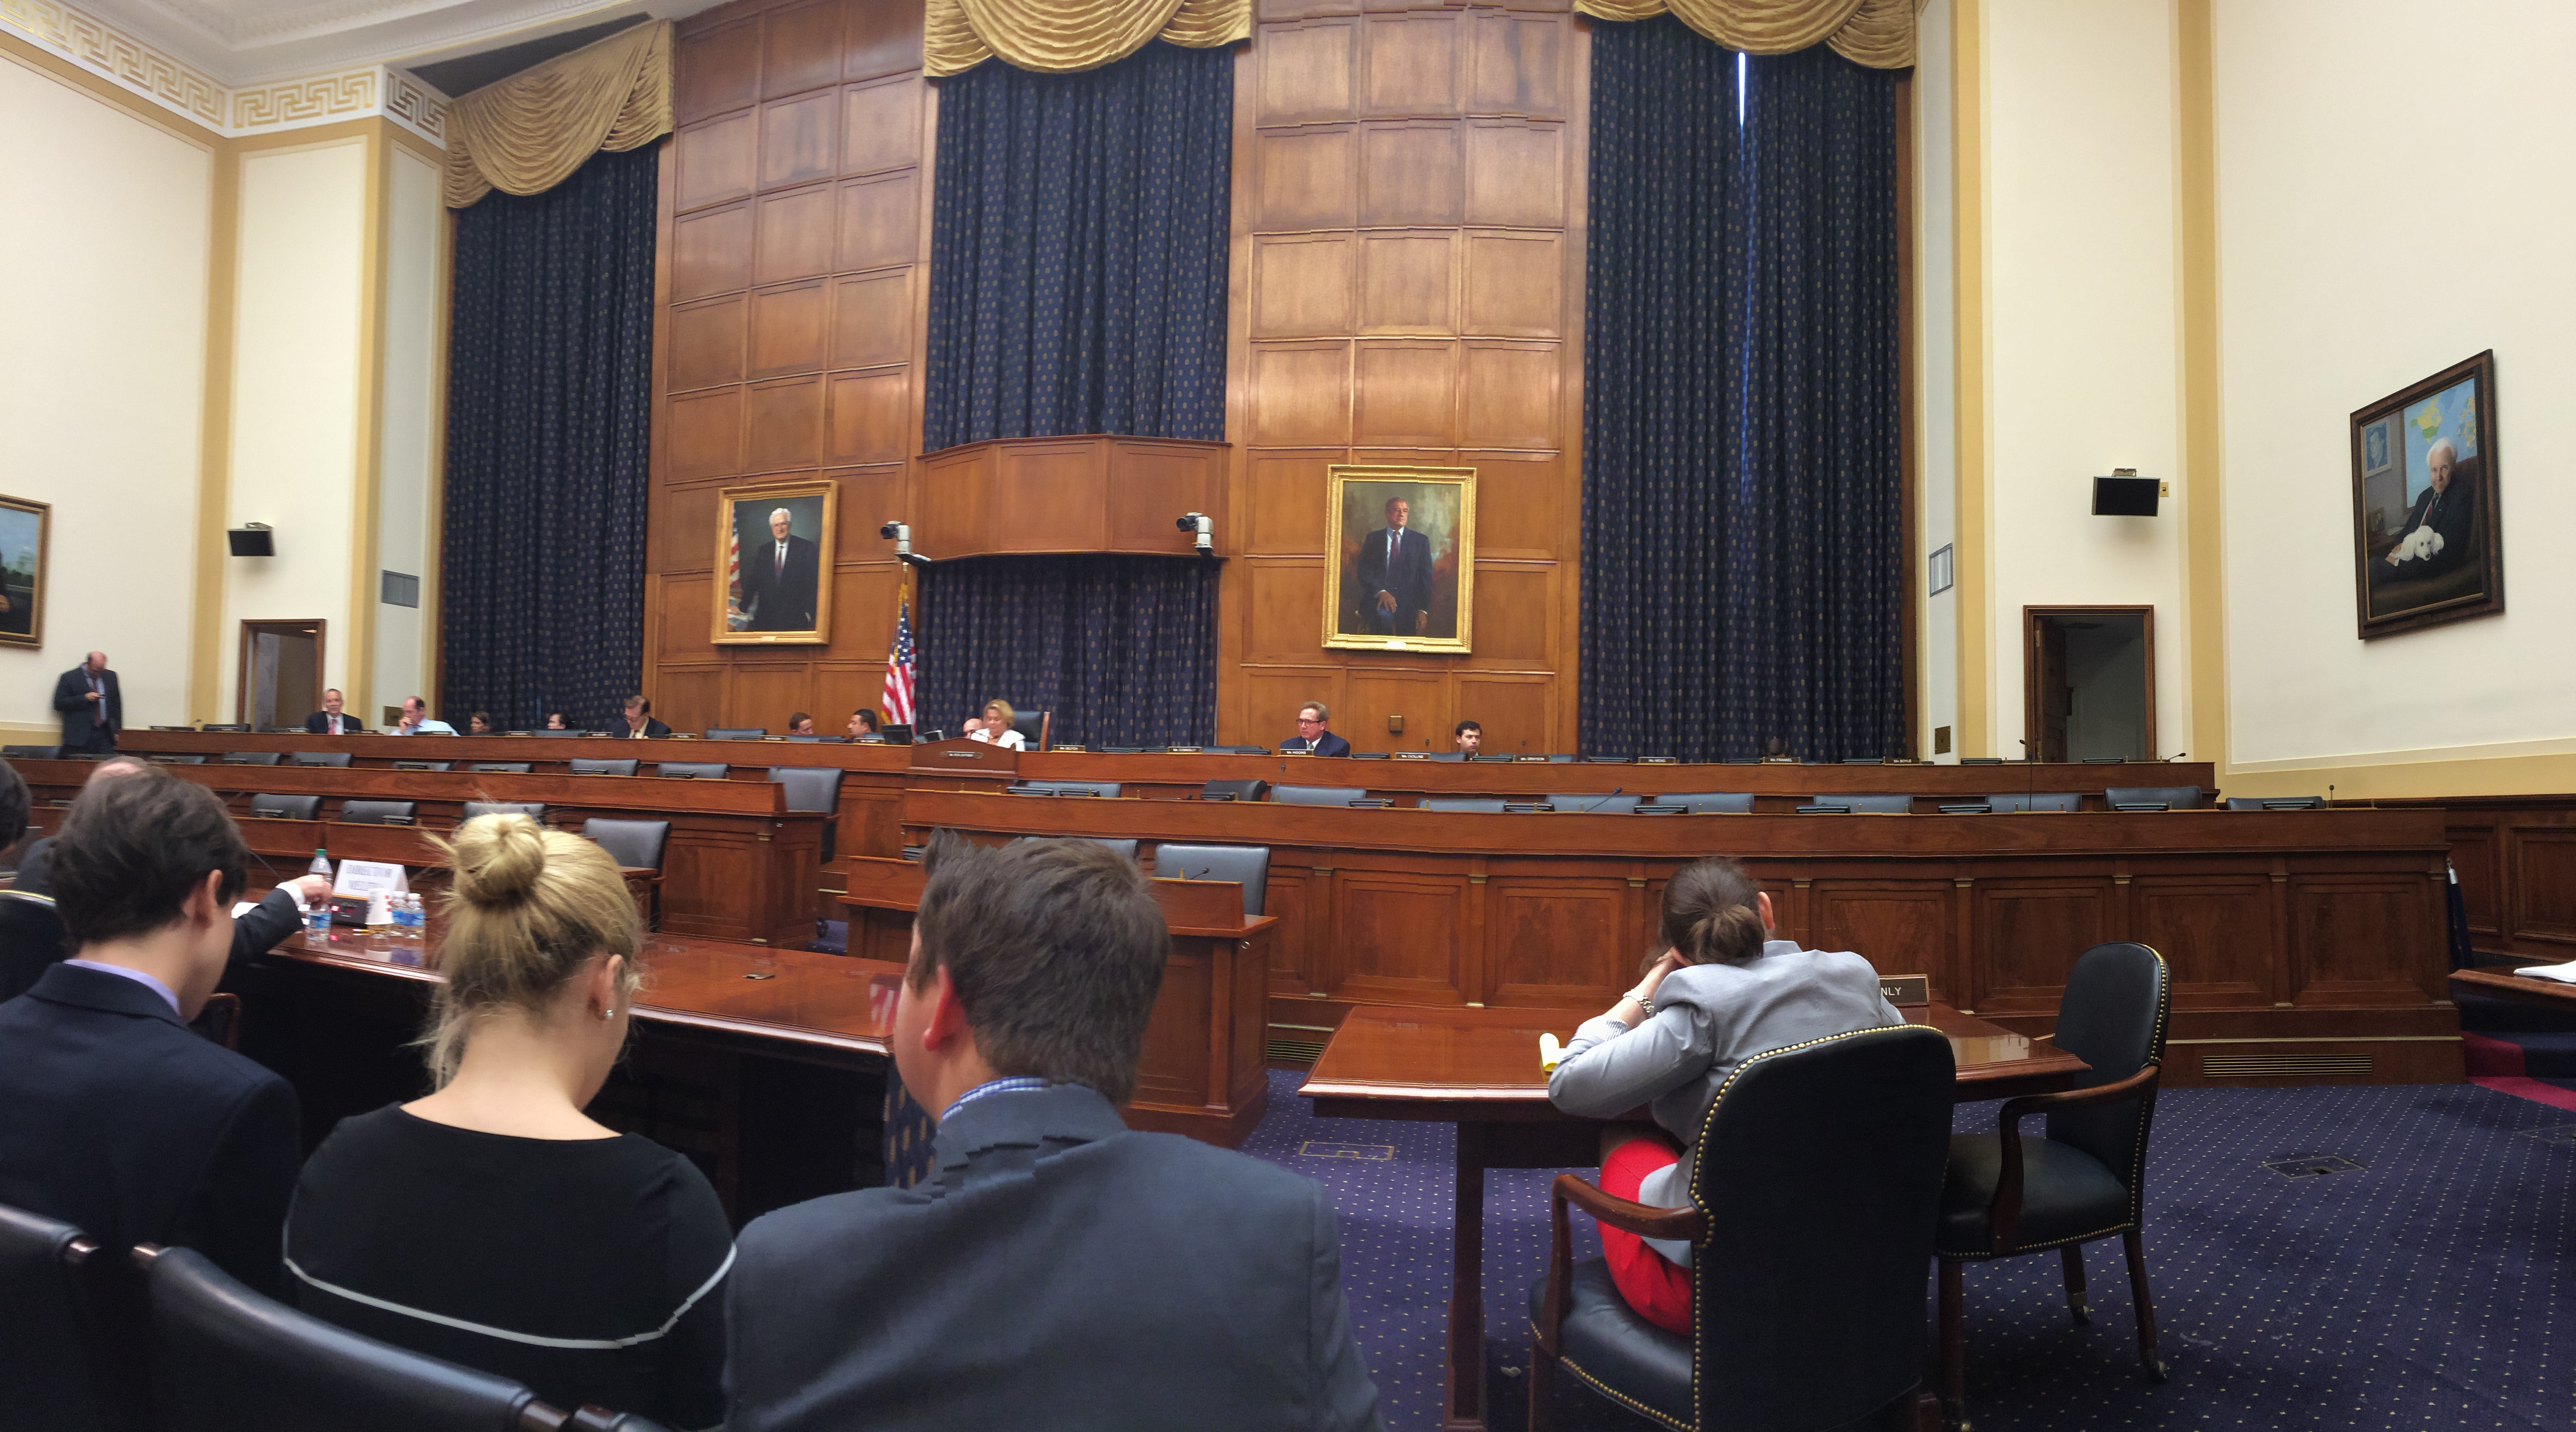 inside of government building with Senate subcommittee hearing occurring